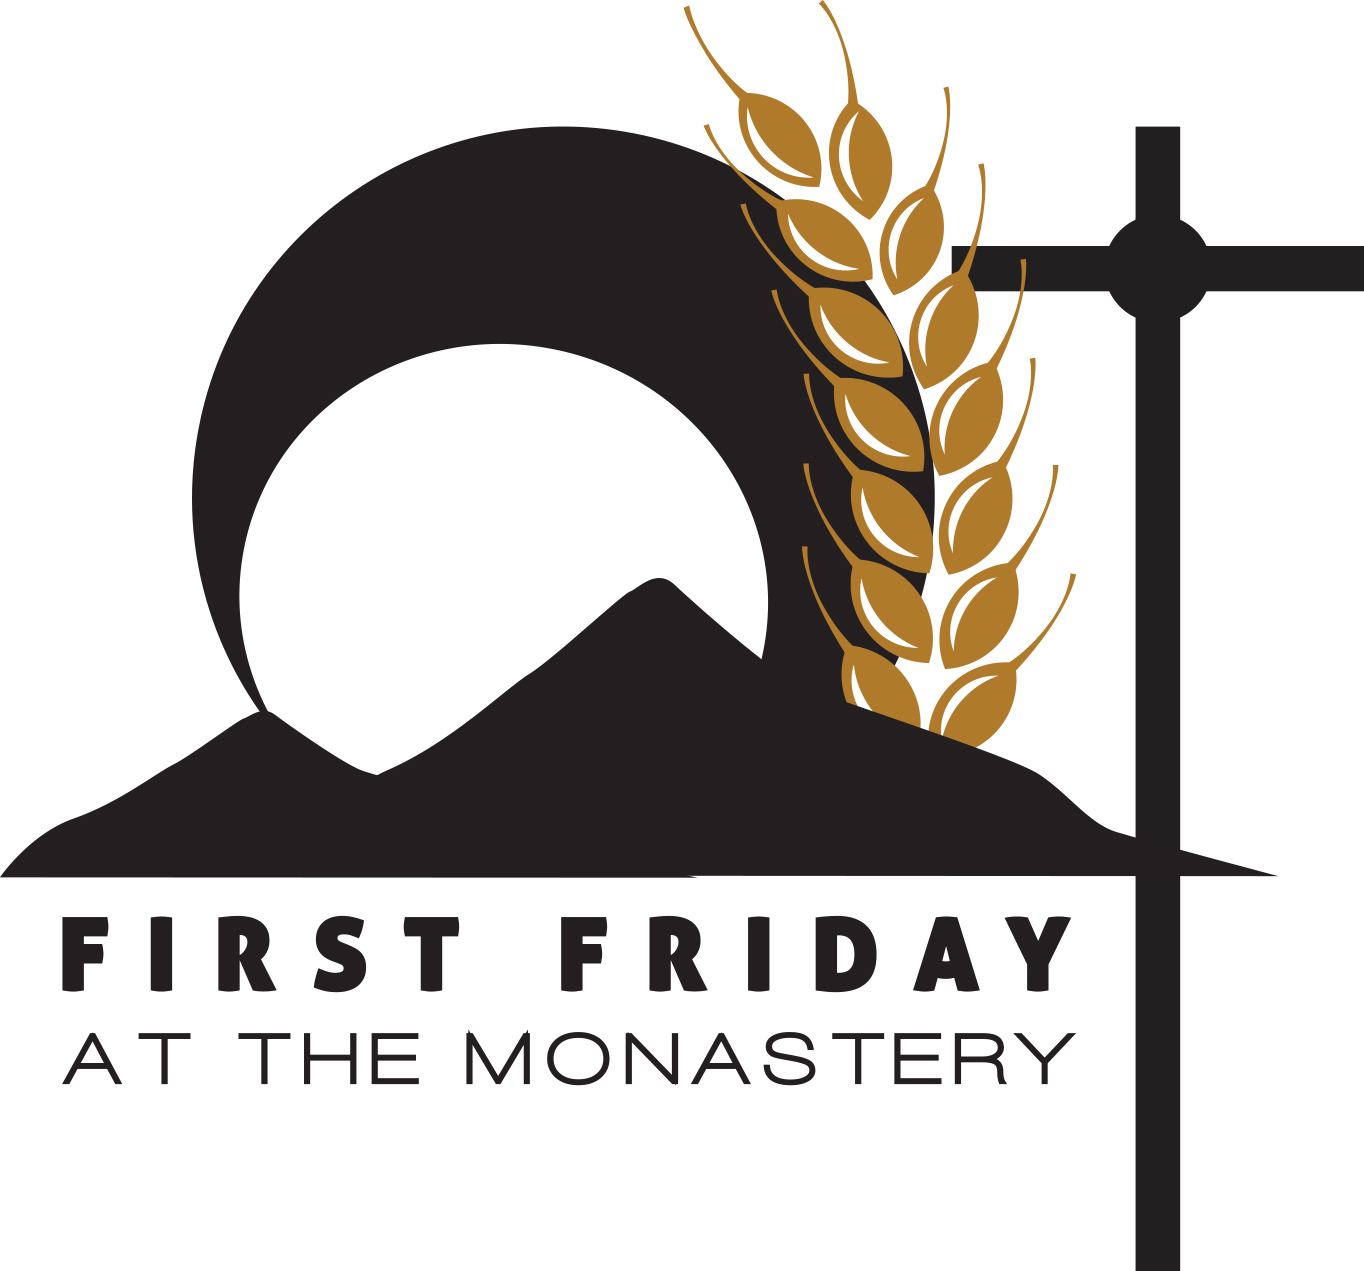 First Friday at the Monastery - MAY